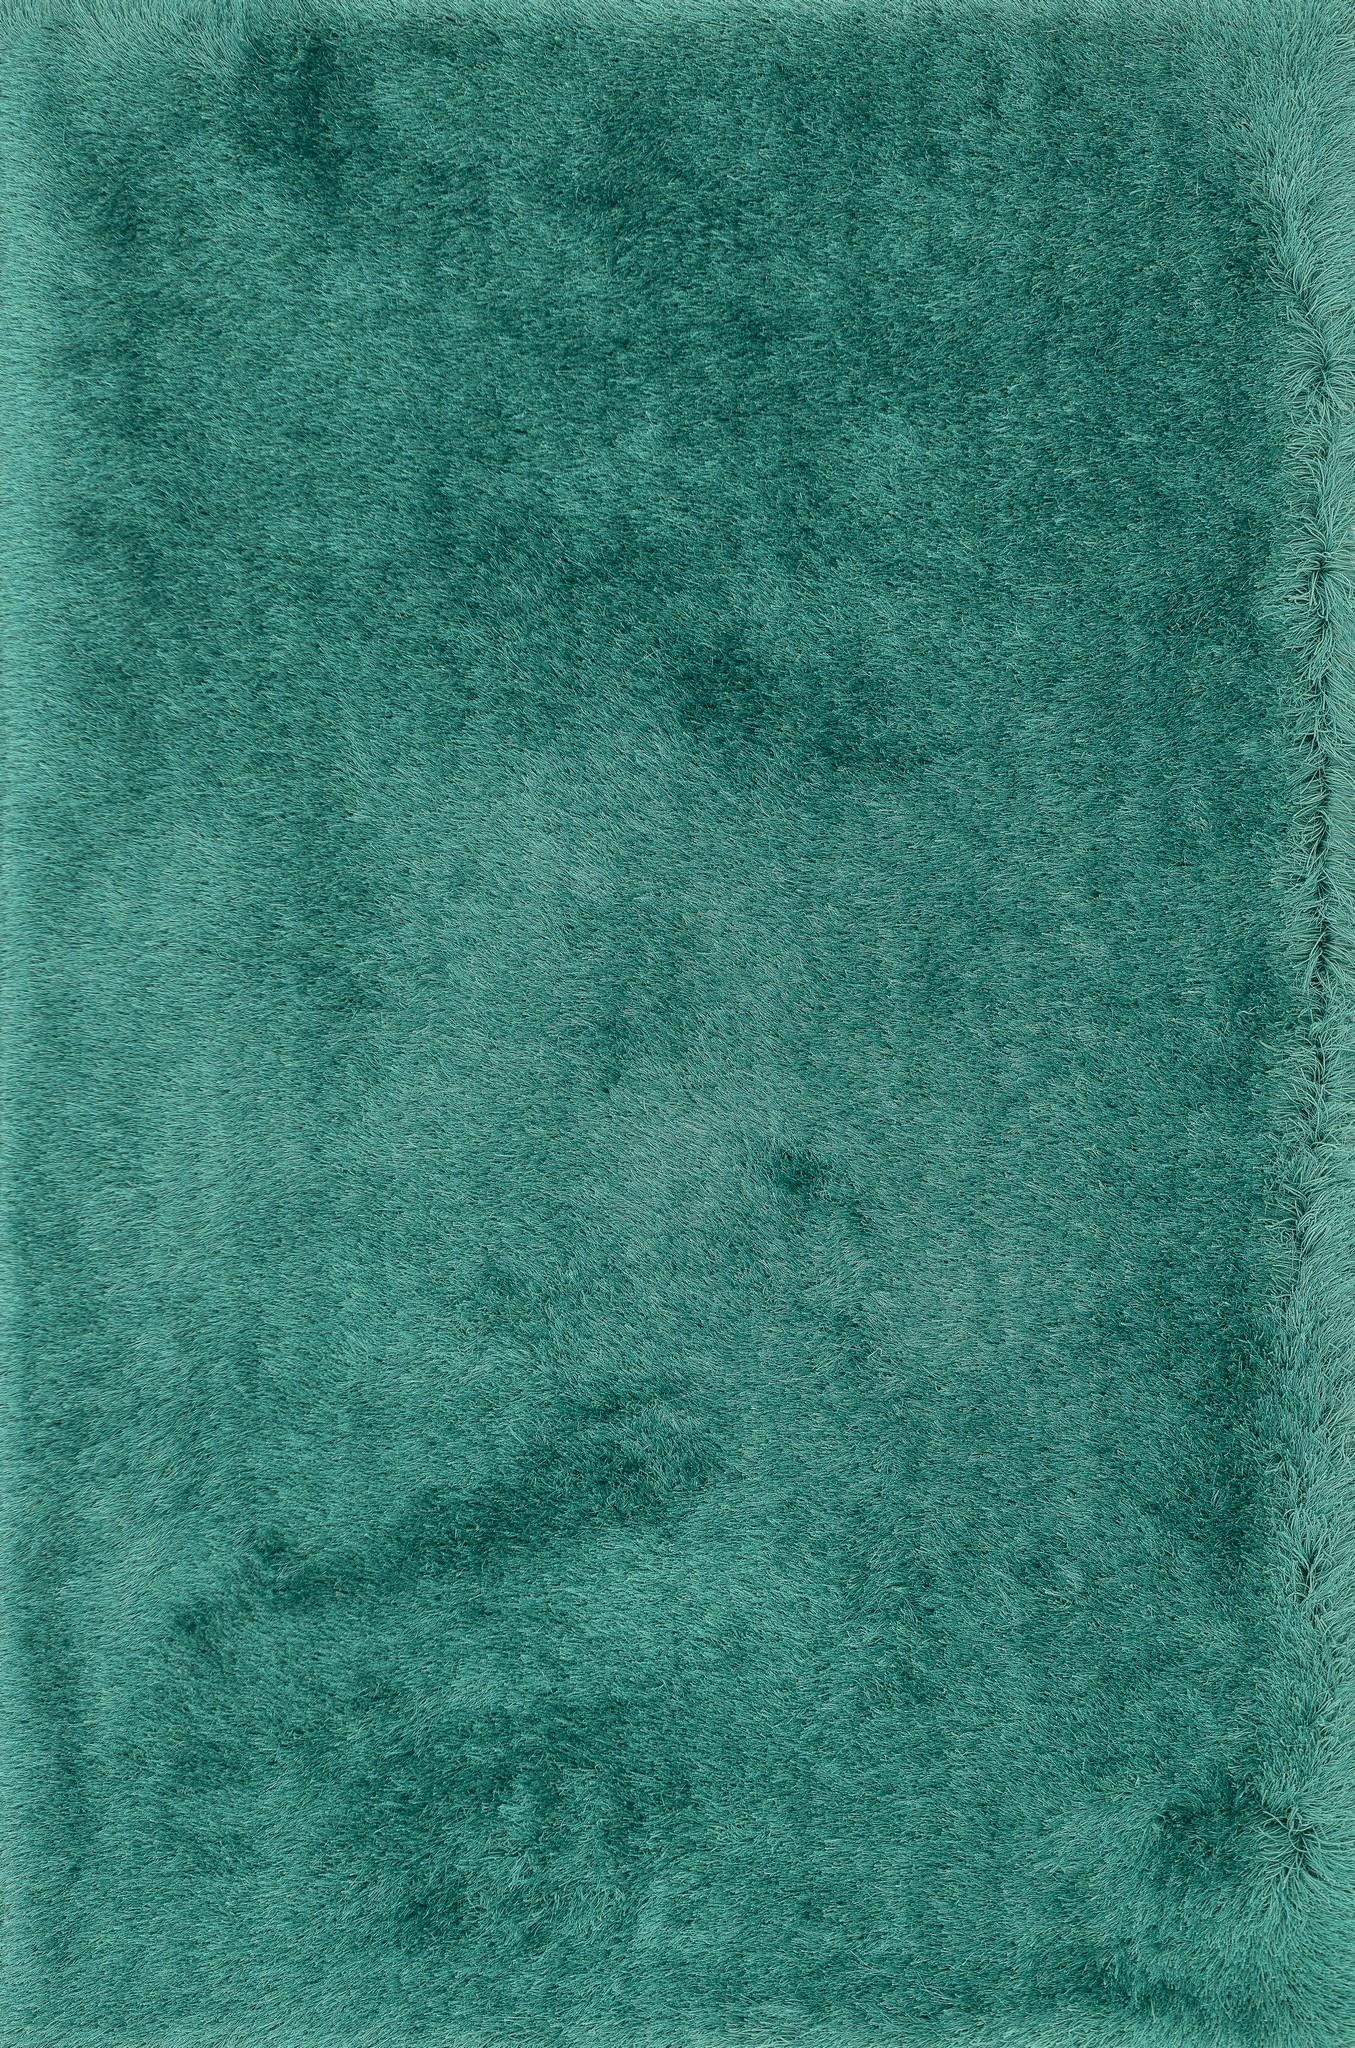 allure shag in turquoise rug by Loloi Rugs for chic floor cover ideas